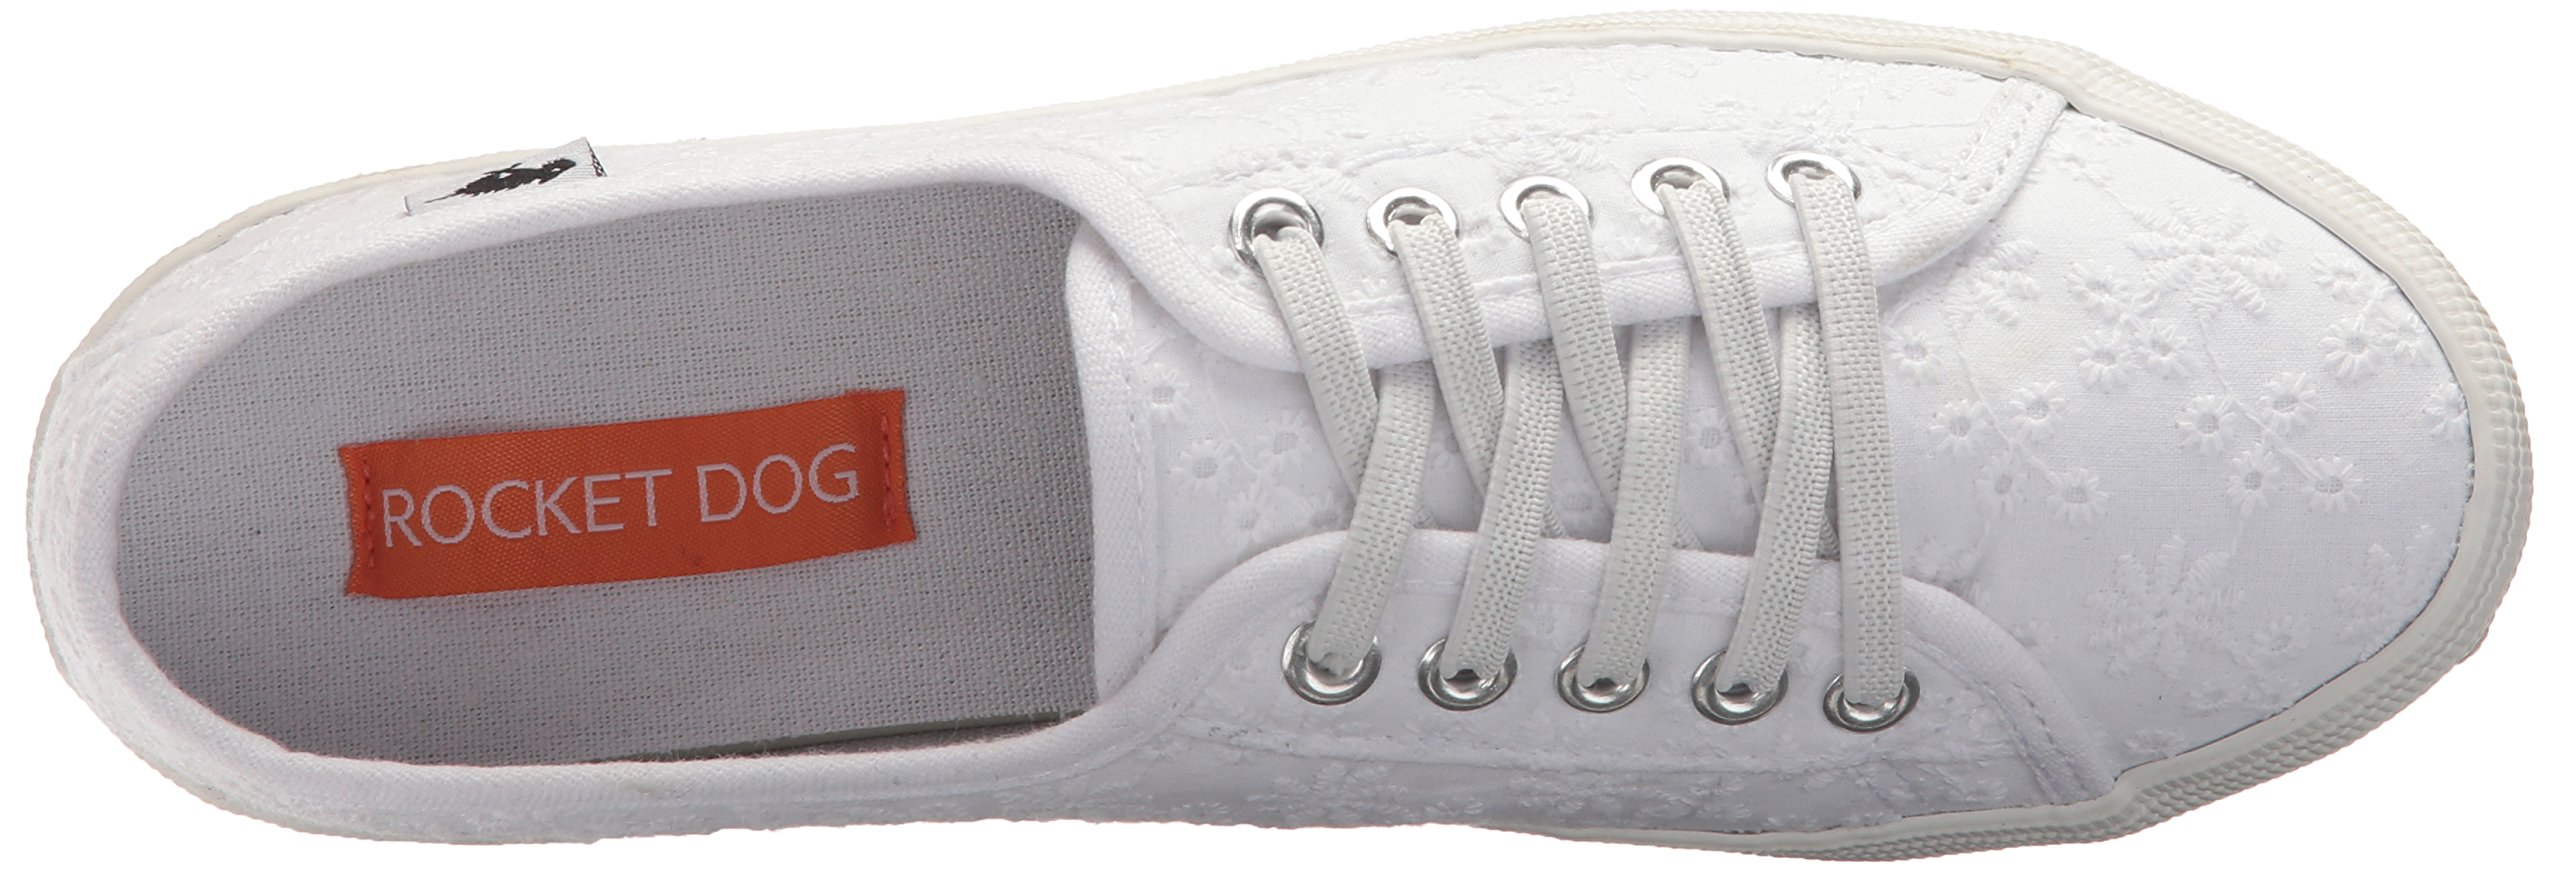 Rocket Dog Women's Chowchow Lucky Eyelet Cotton Sneaker, White, 9.5 Medium US by Rocket Dog (Image #7)